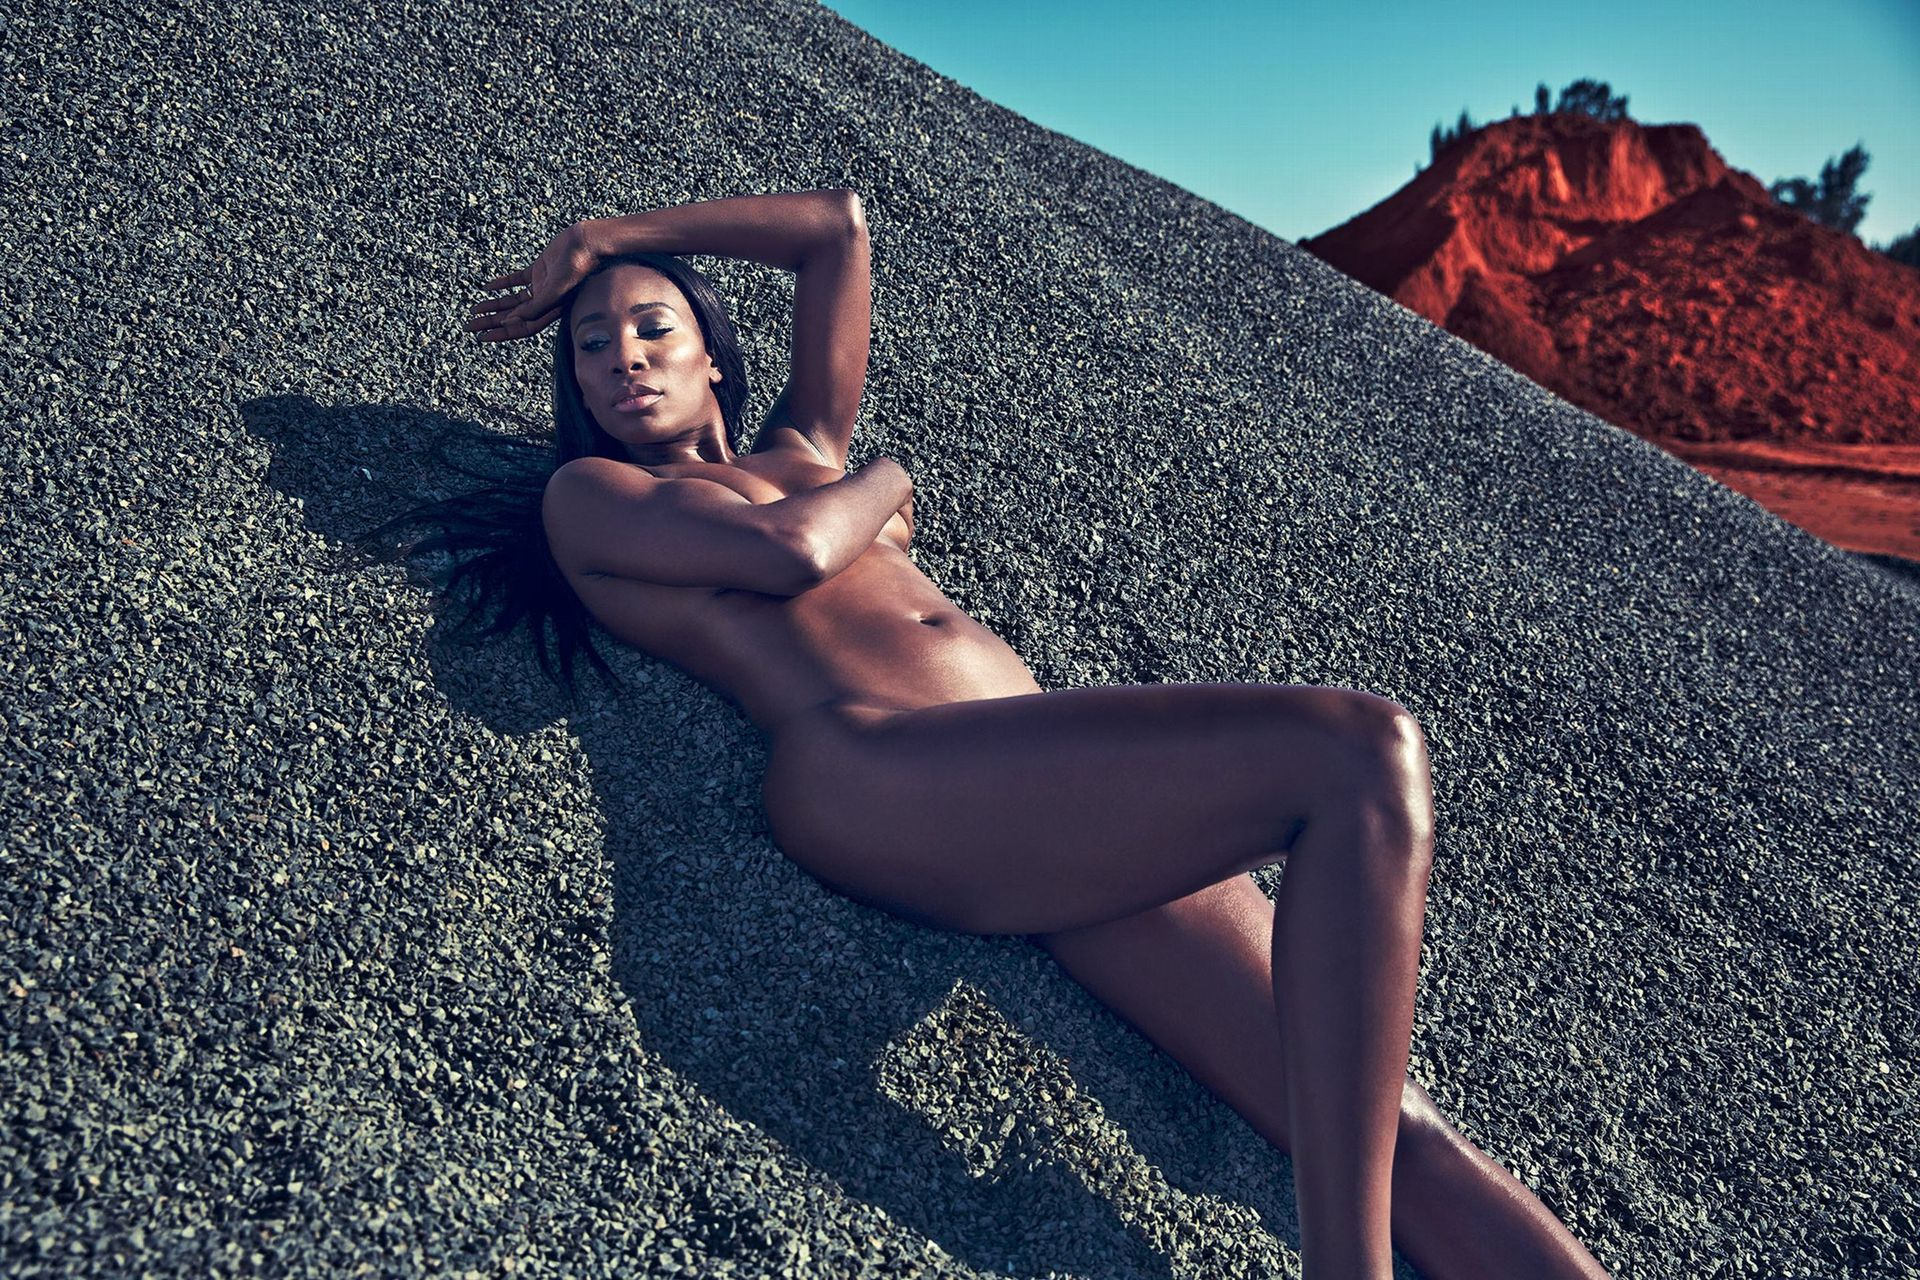 Venus williams naked pictures